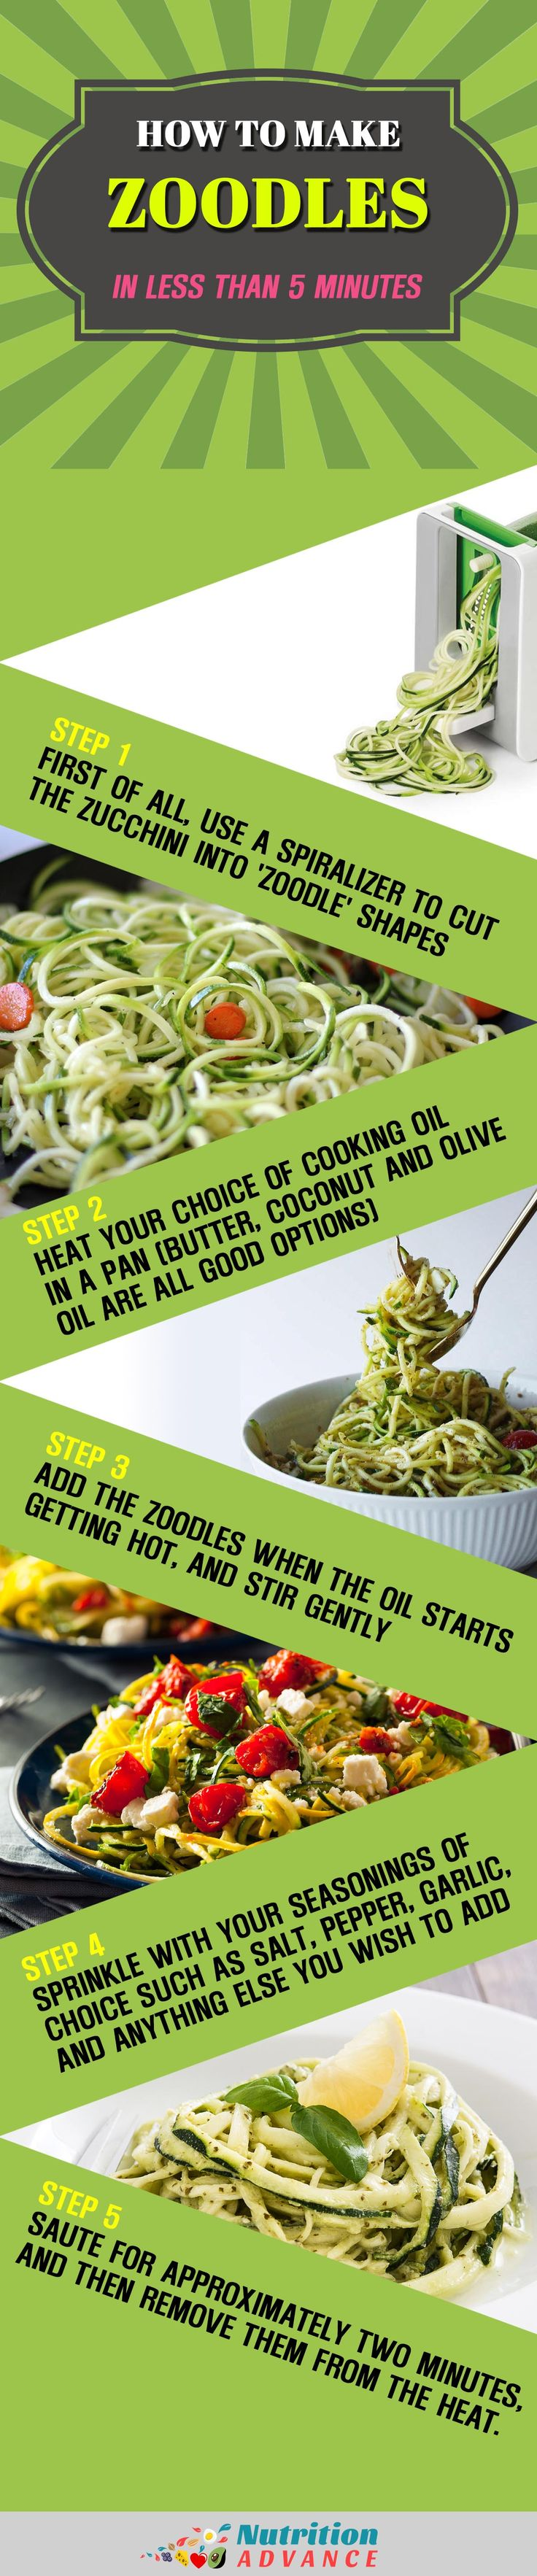 Low Carb Zoodles. This infographic explains how to make zoodles in 5 very simple steps. Zoodles are a low carb noodle substitute that are perfect for LCHF, paleo and keto diets. For more on the benefits of zoodles, see http://nutritionadvance.com/complete-guide-to-zoodles